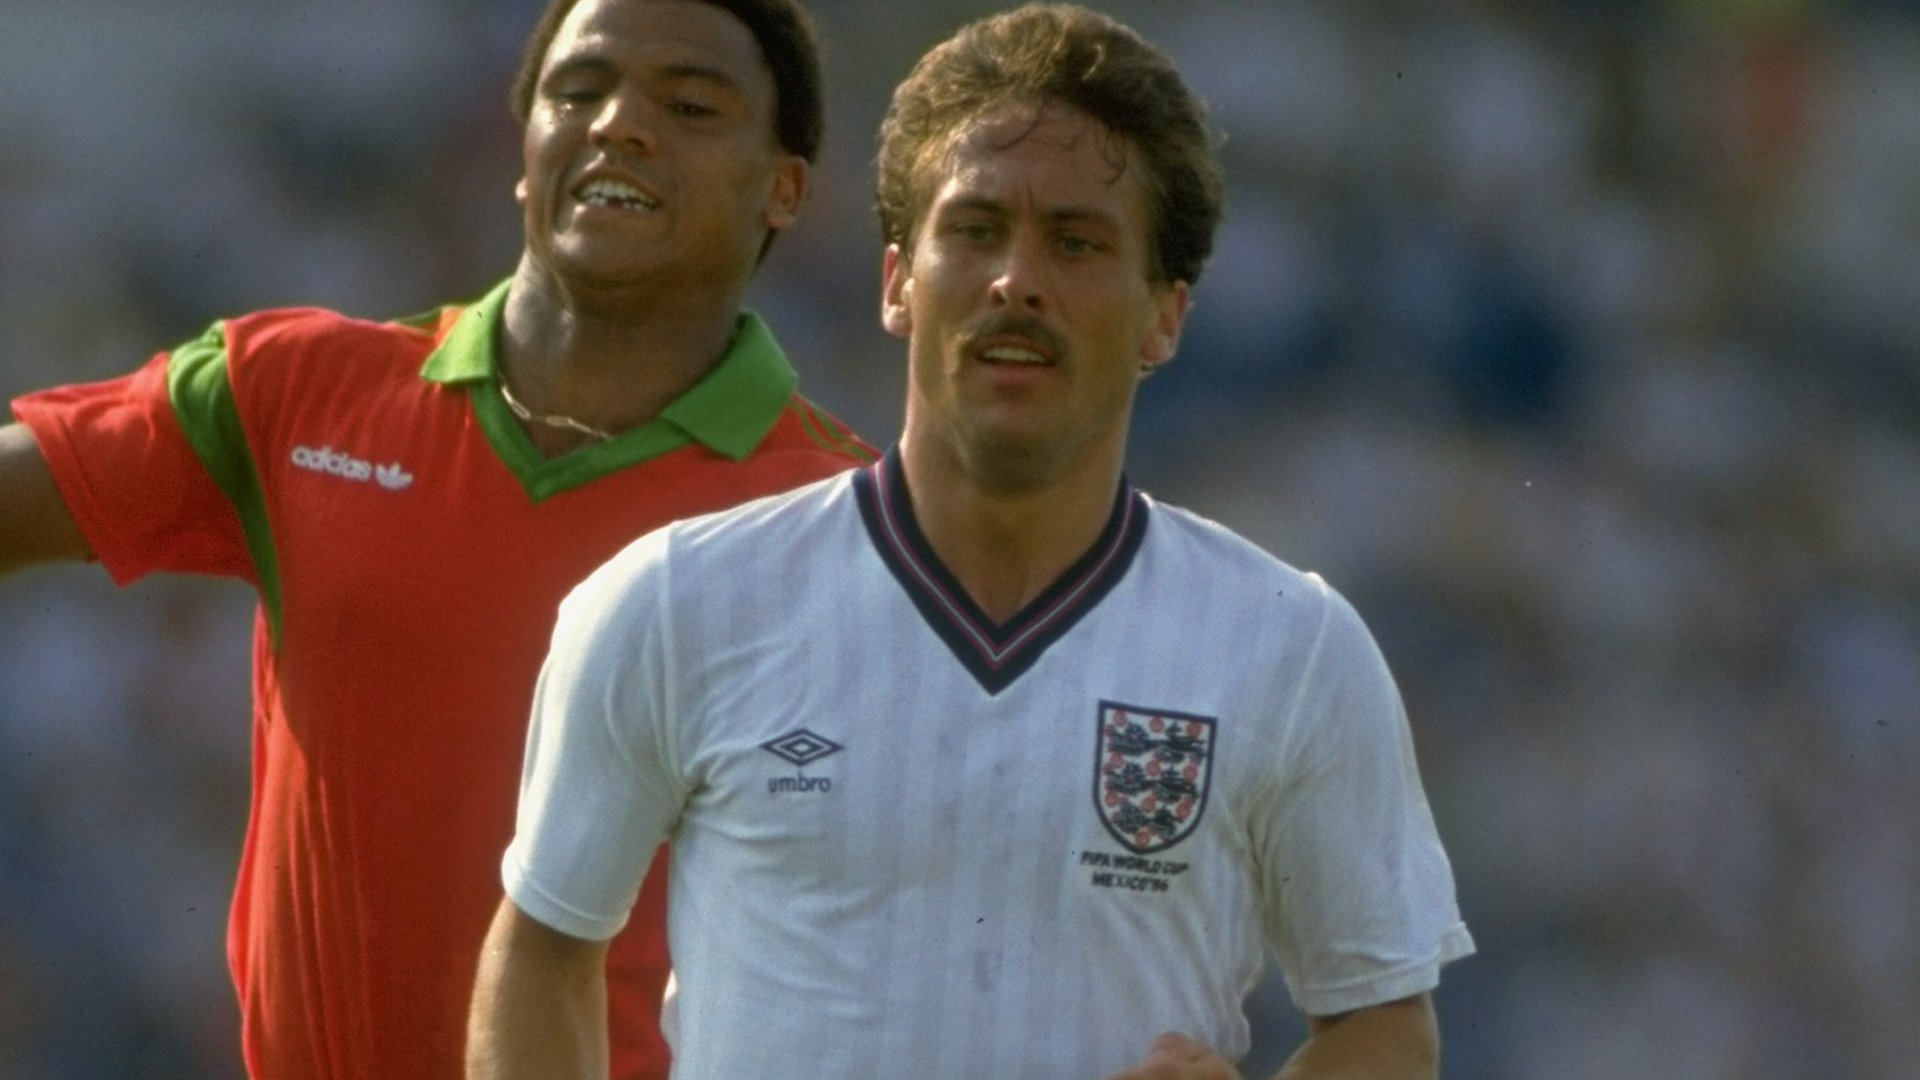 Former England defender Sansom in hospital with 'head injury'